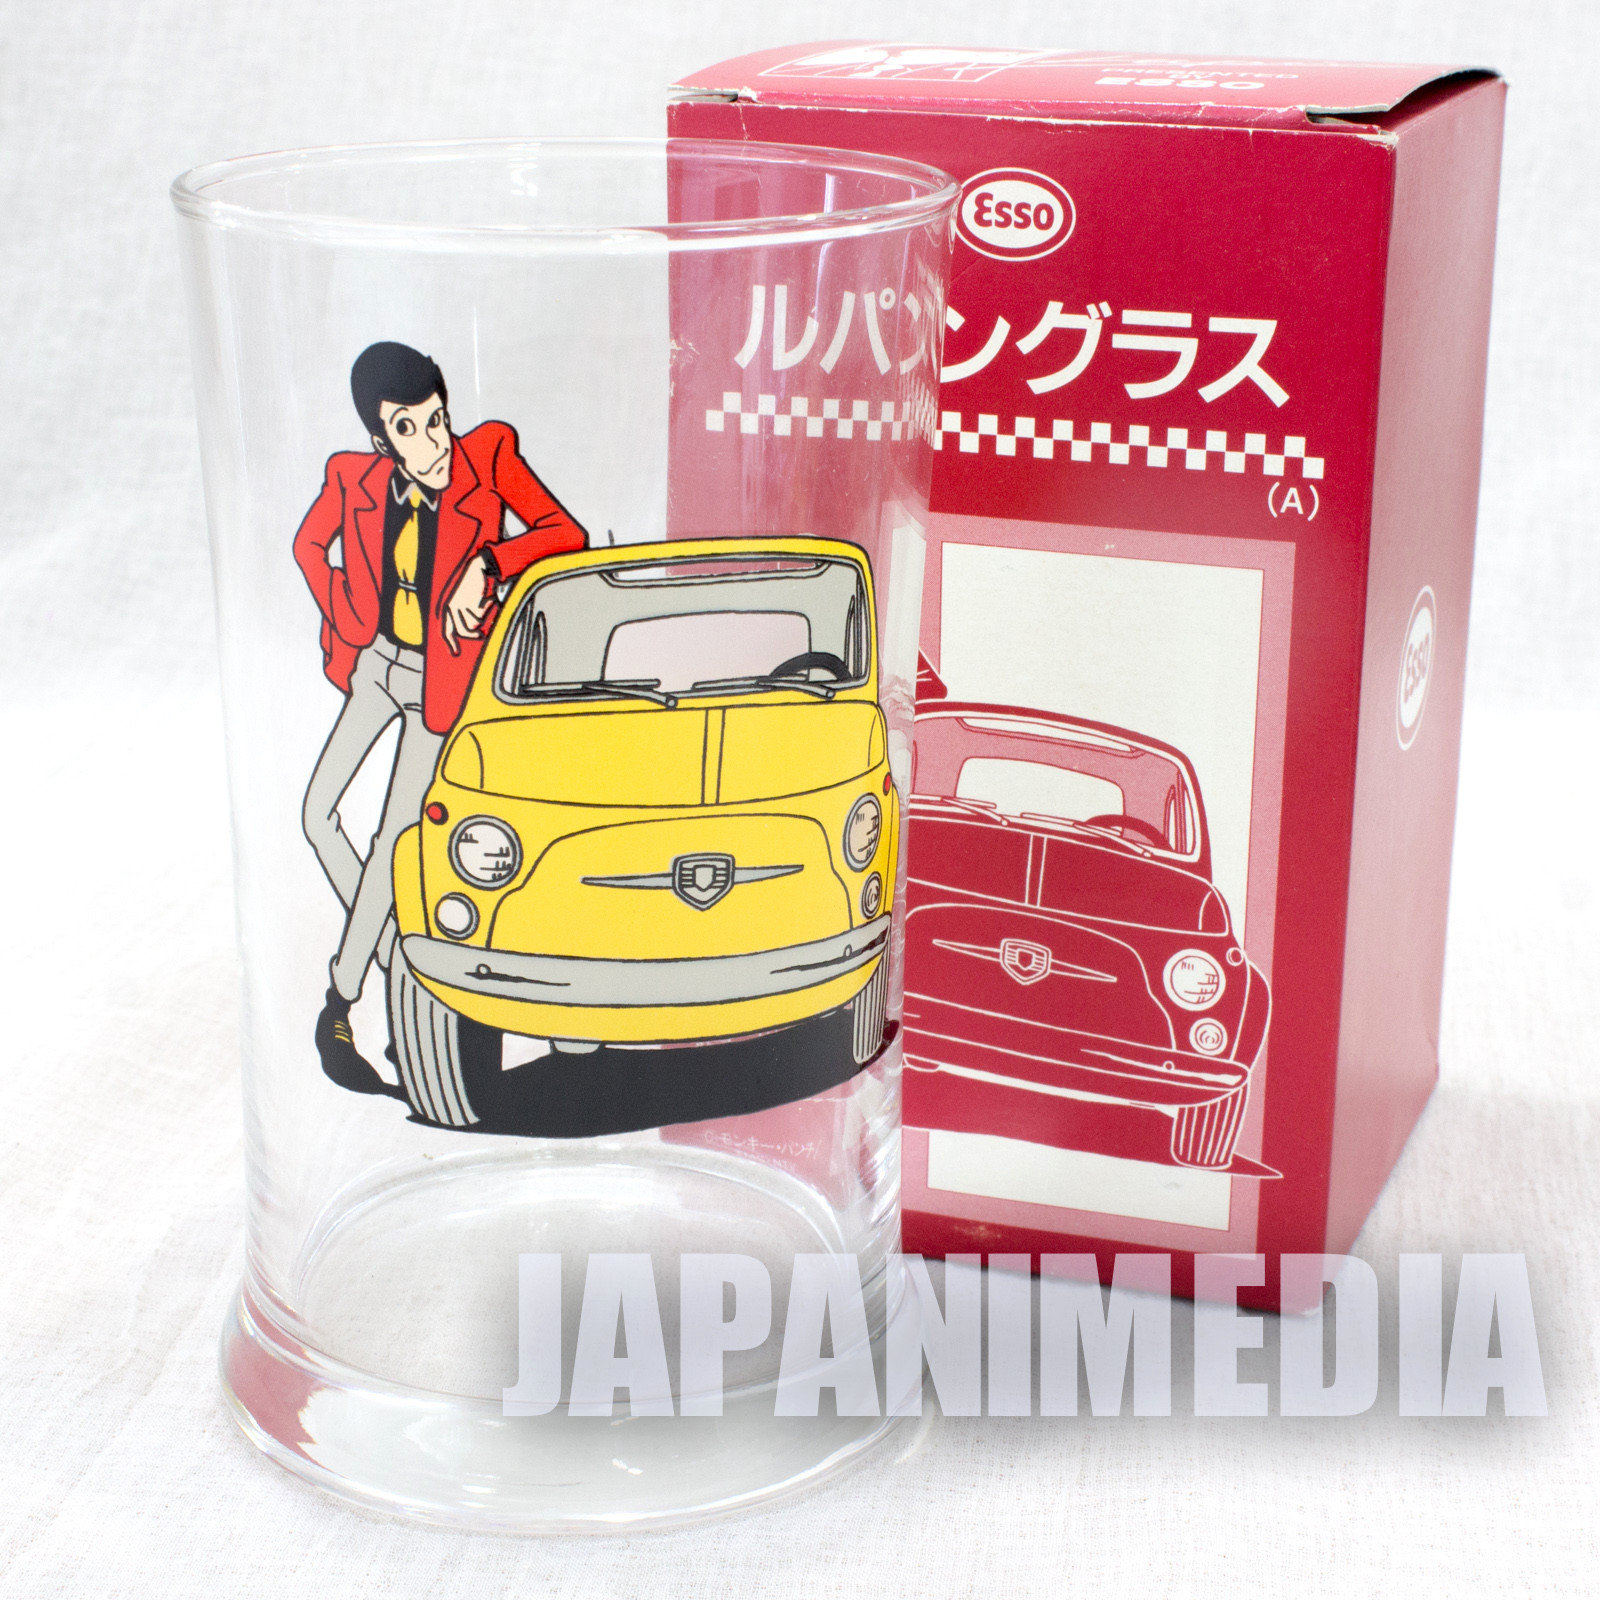 Lupin the Third (3rd) Glass Esso Limited JAPAN ANIME 2